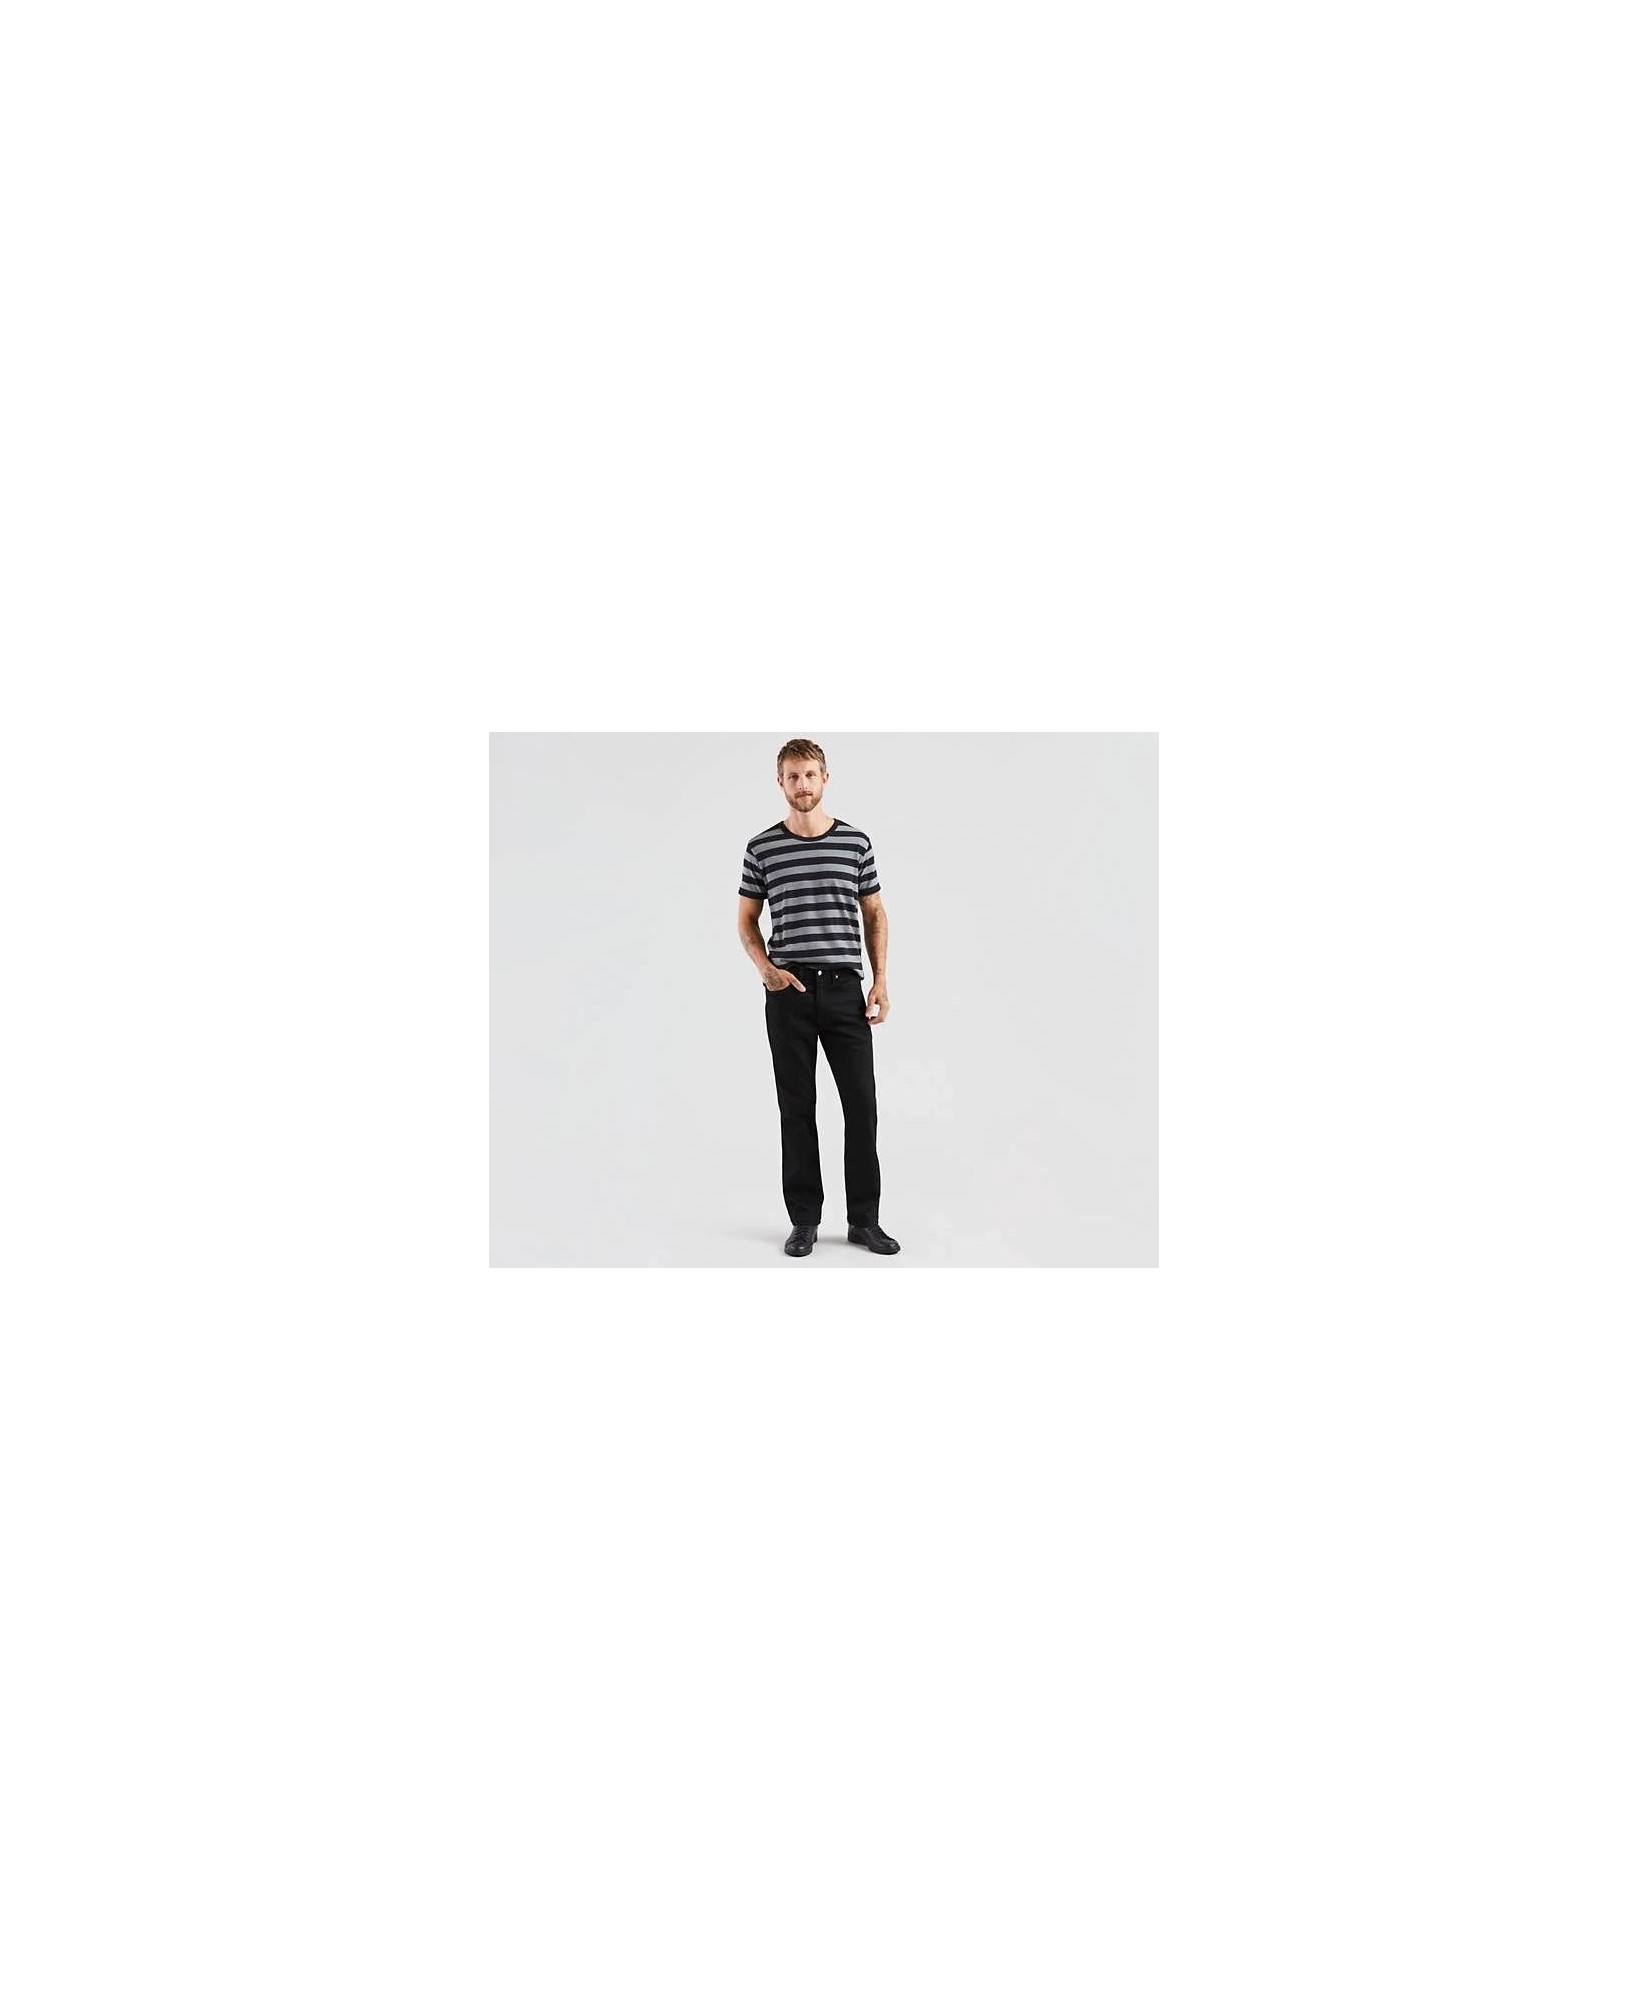 514™ STRAIGHT JEANS - ADVANCED STRETCH 514™ STRAIGHT JEANS - ADVANCED STRETCH